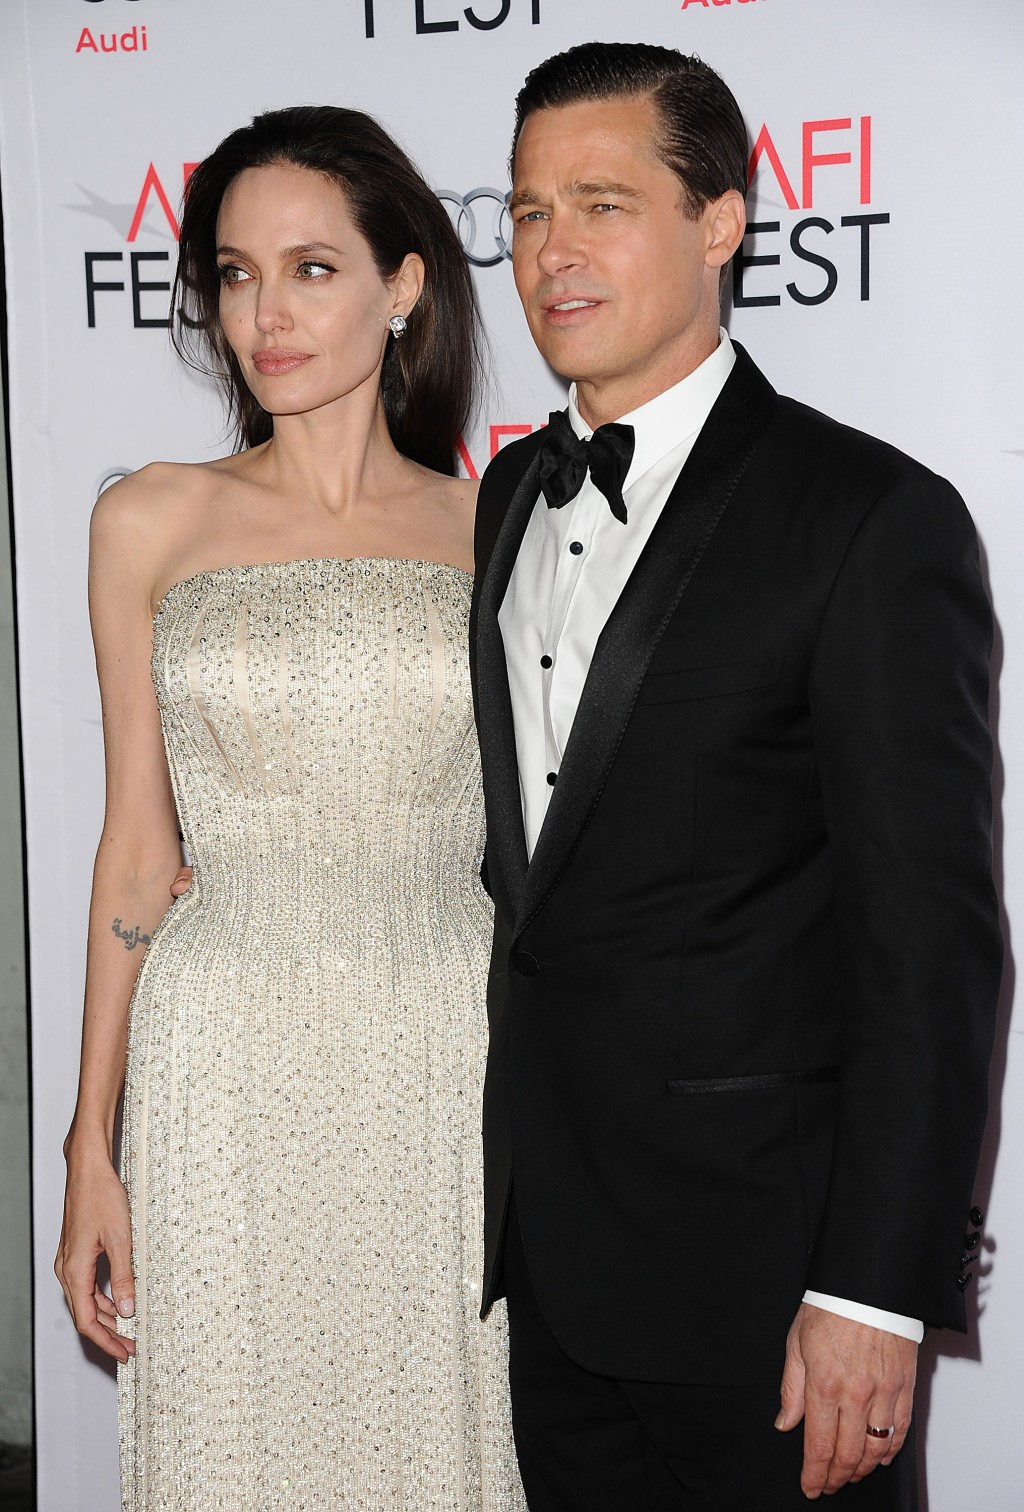 AFI FEST 2015 Presented By Audi Opening Night Gala Premiere Of Universal Pictures' 'By the Sea' - Arrivals